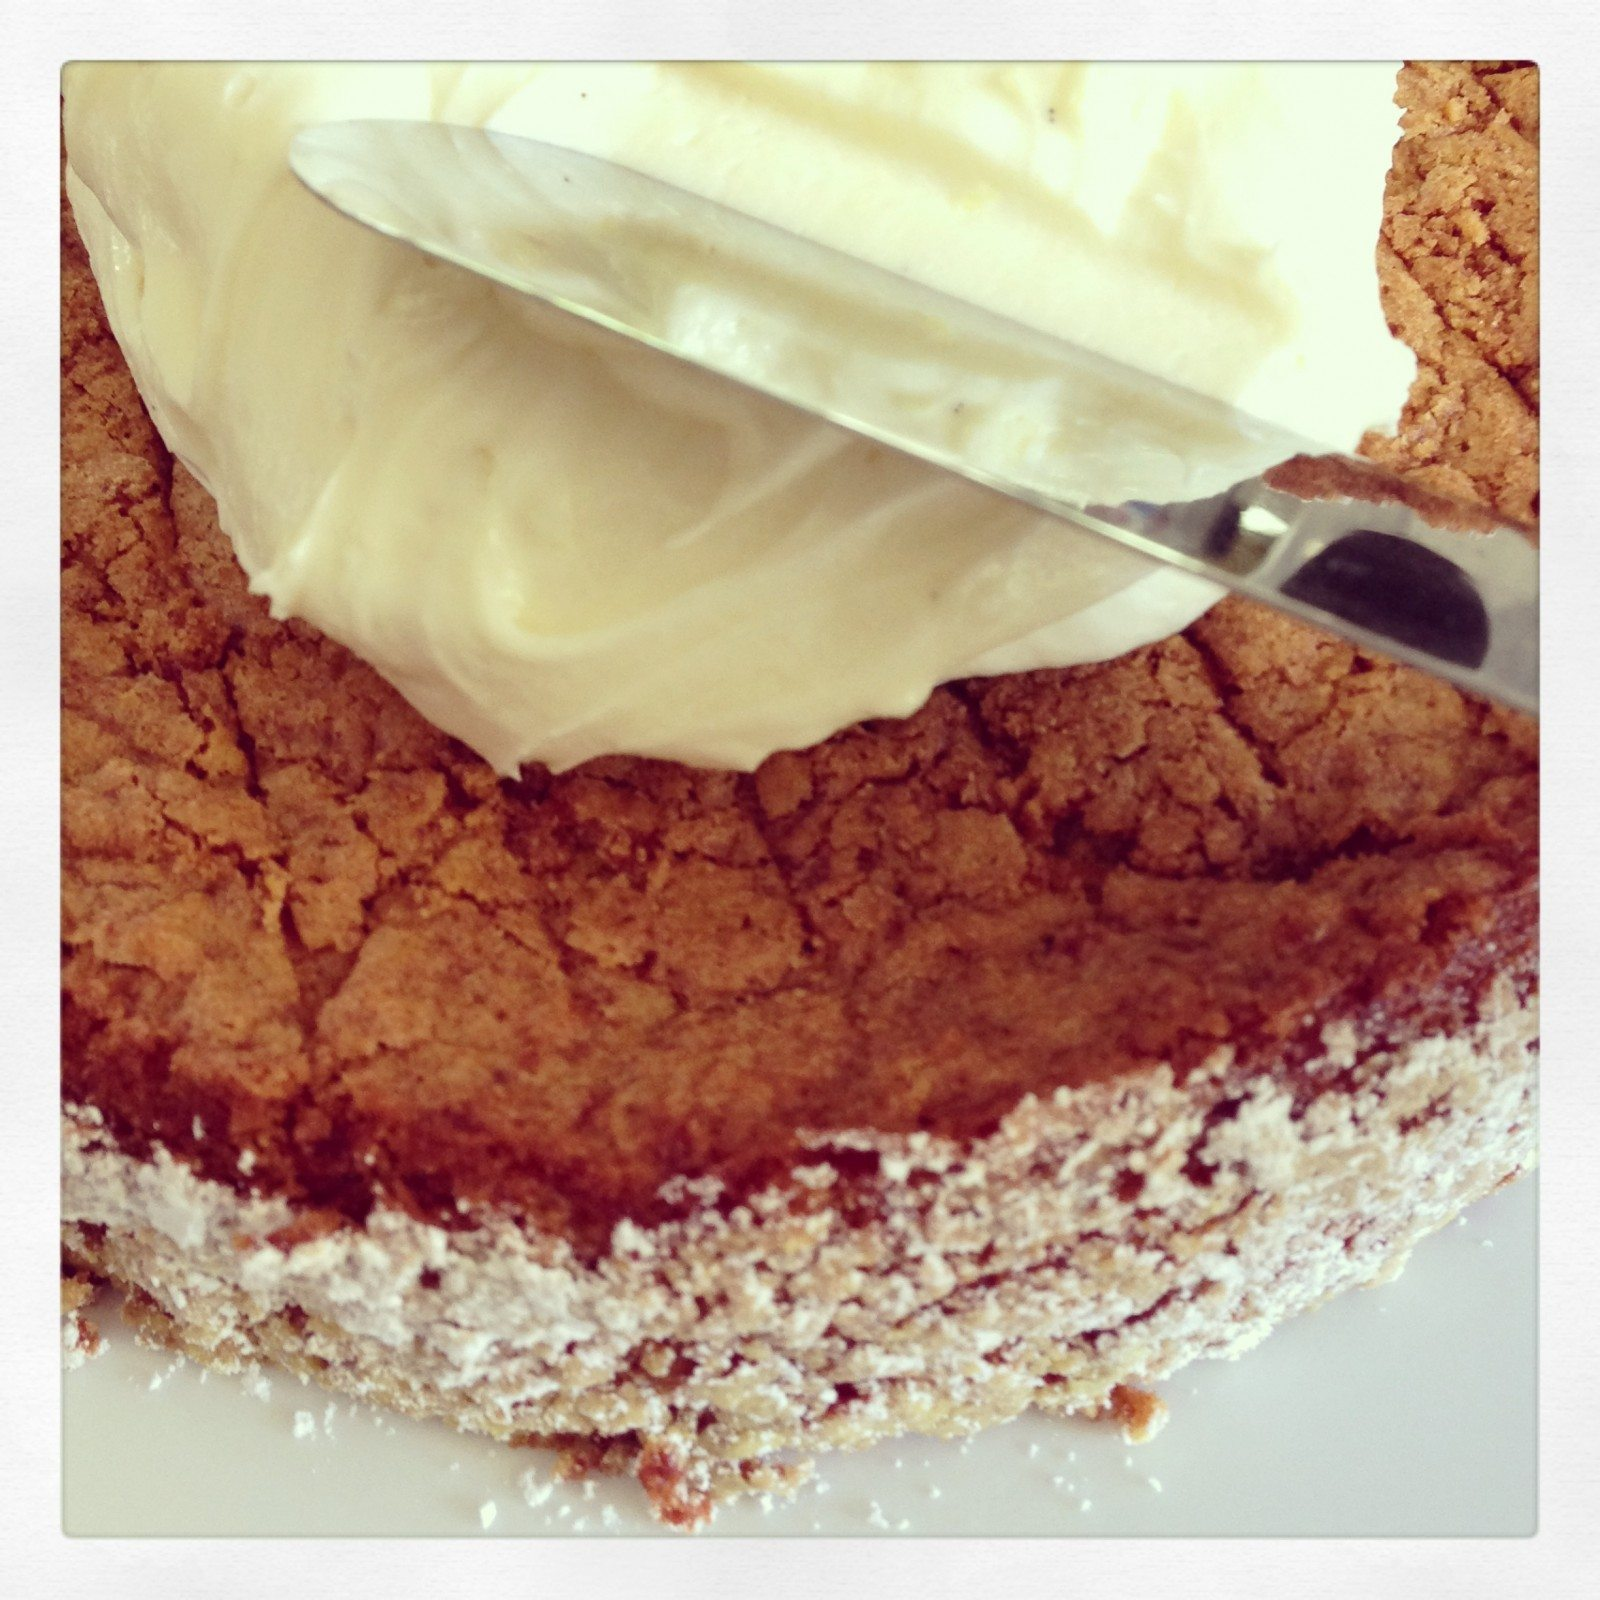 The best ever carrot cake - recipe to come